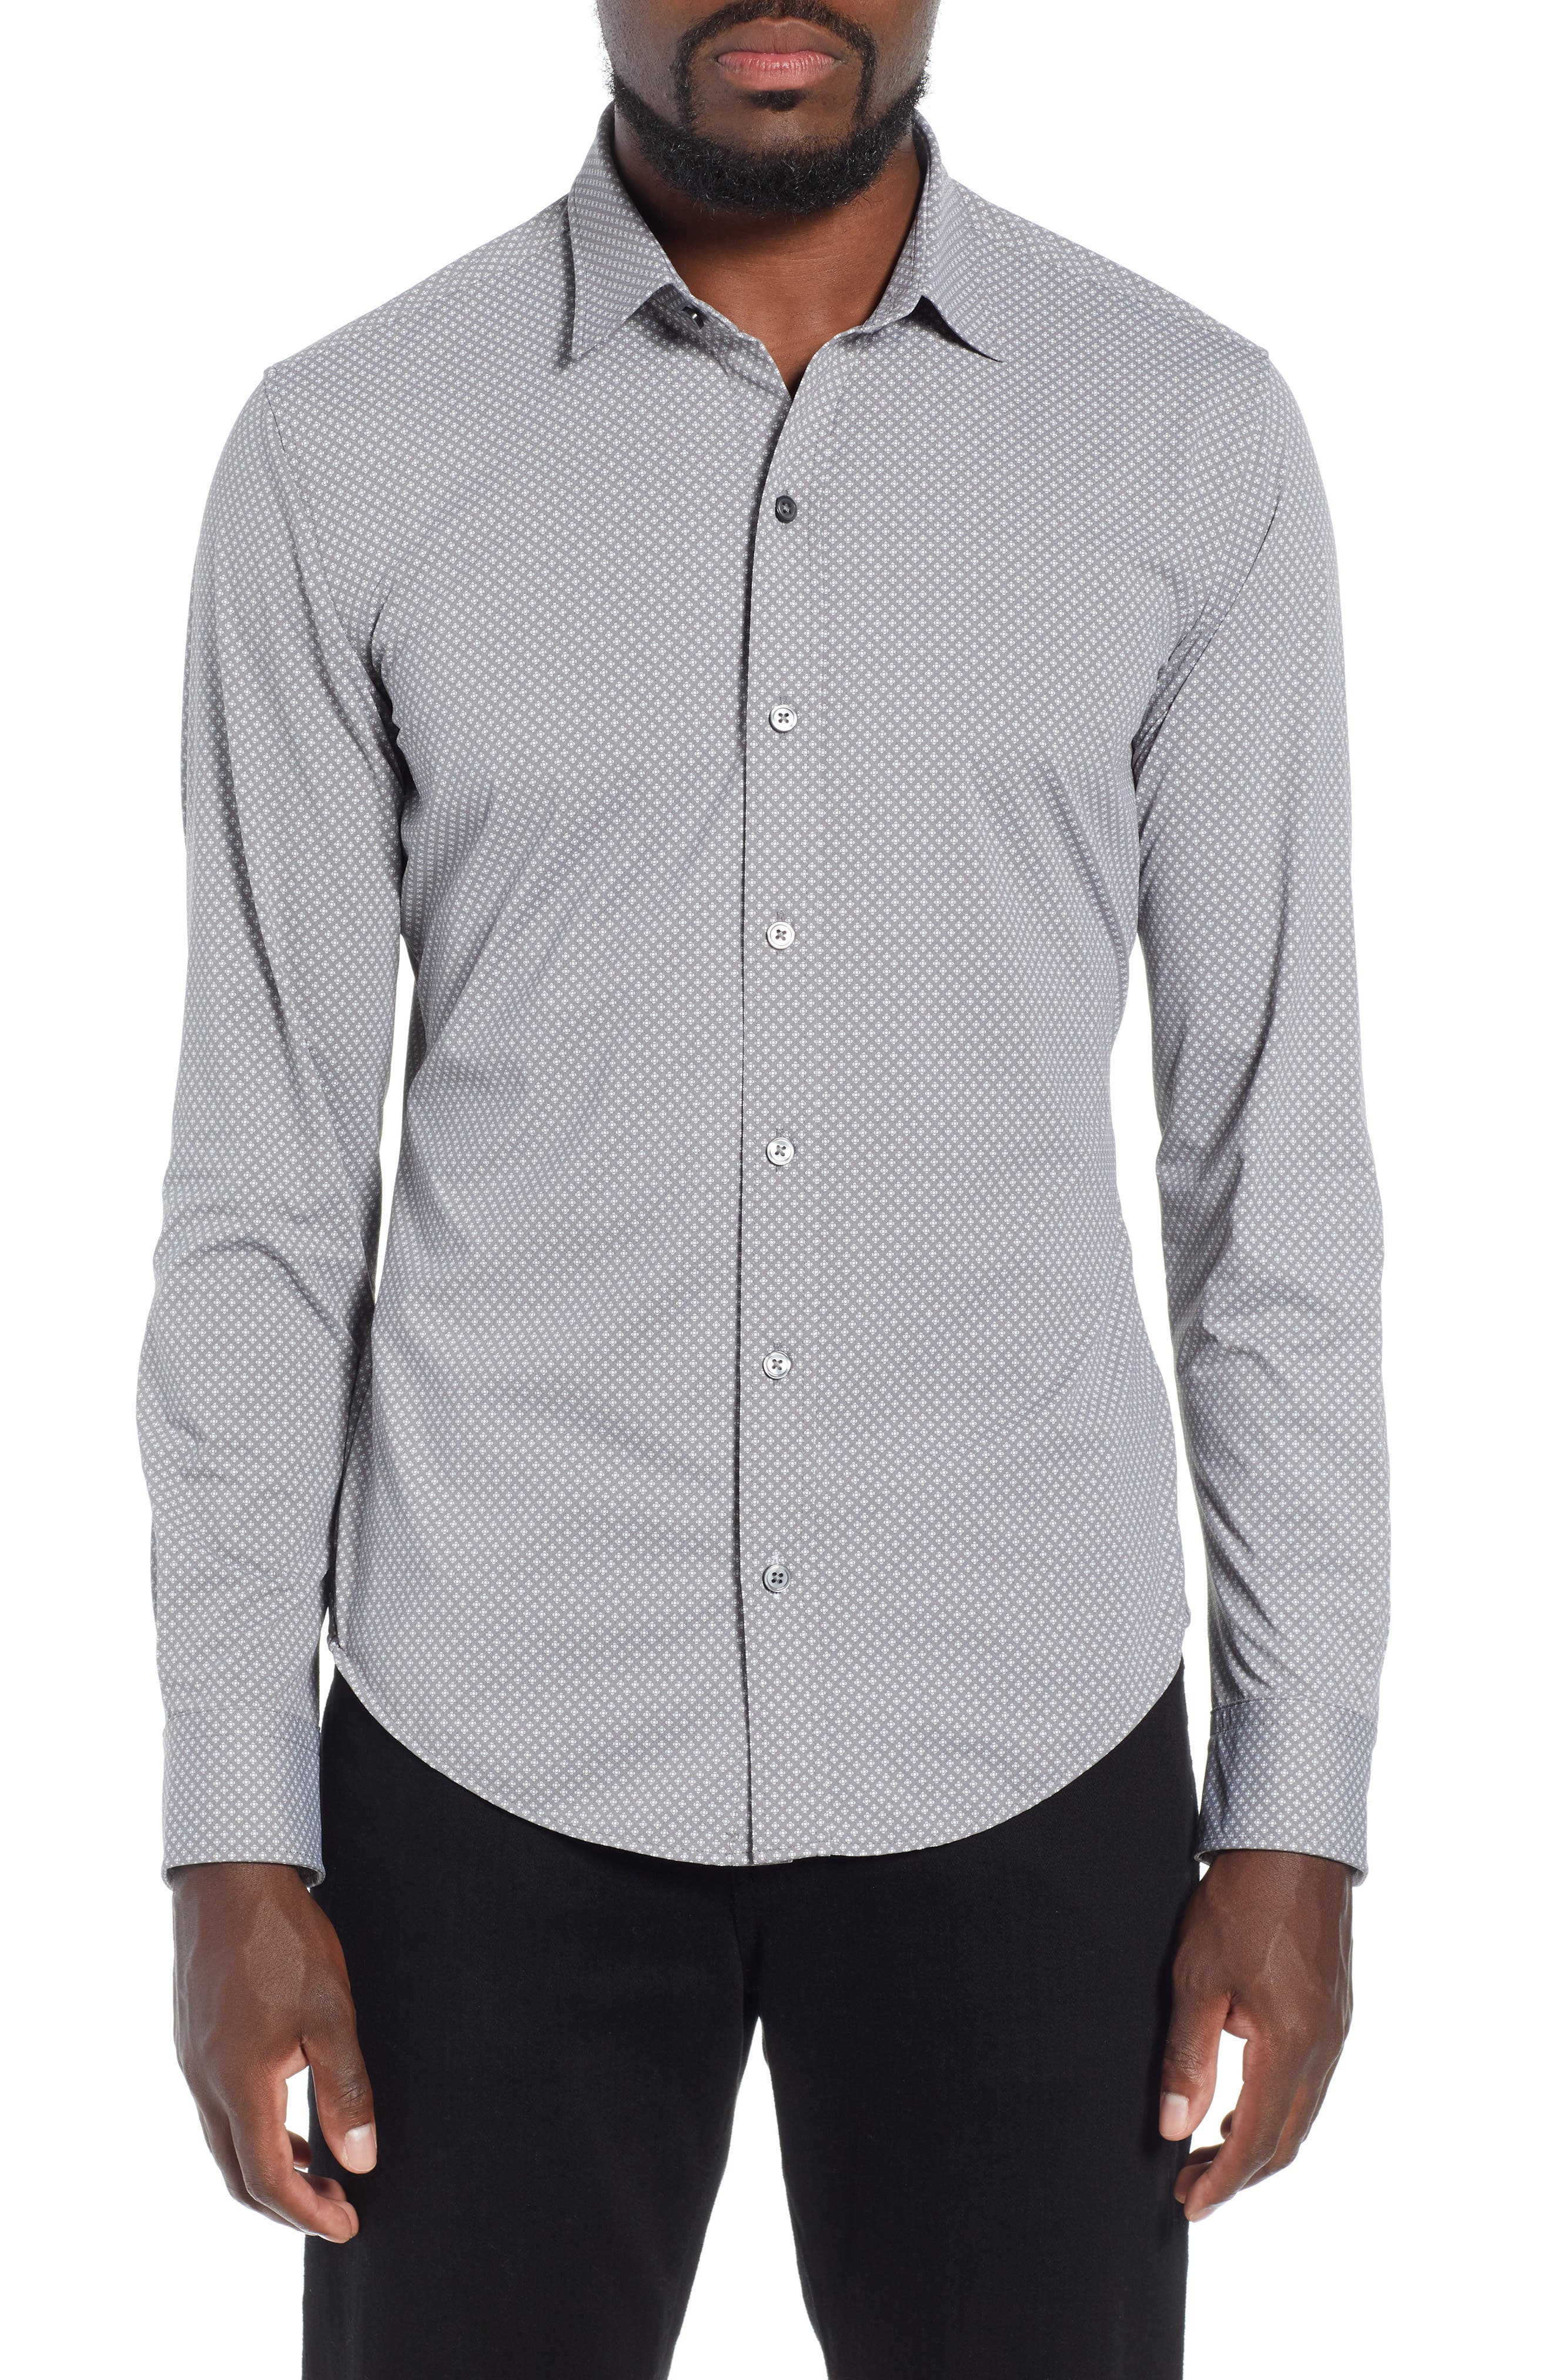 Robbie Extra Trim Fit Microprint Sport Shirt,                         Main,                         color, GREY